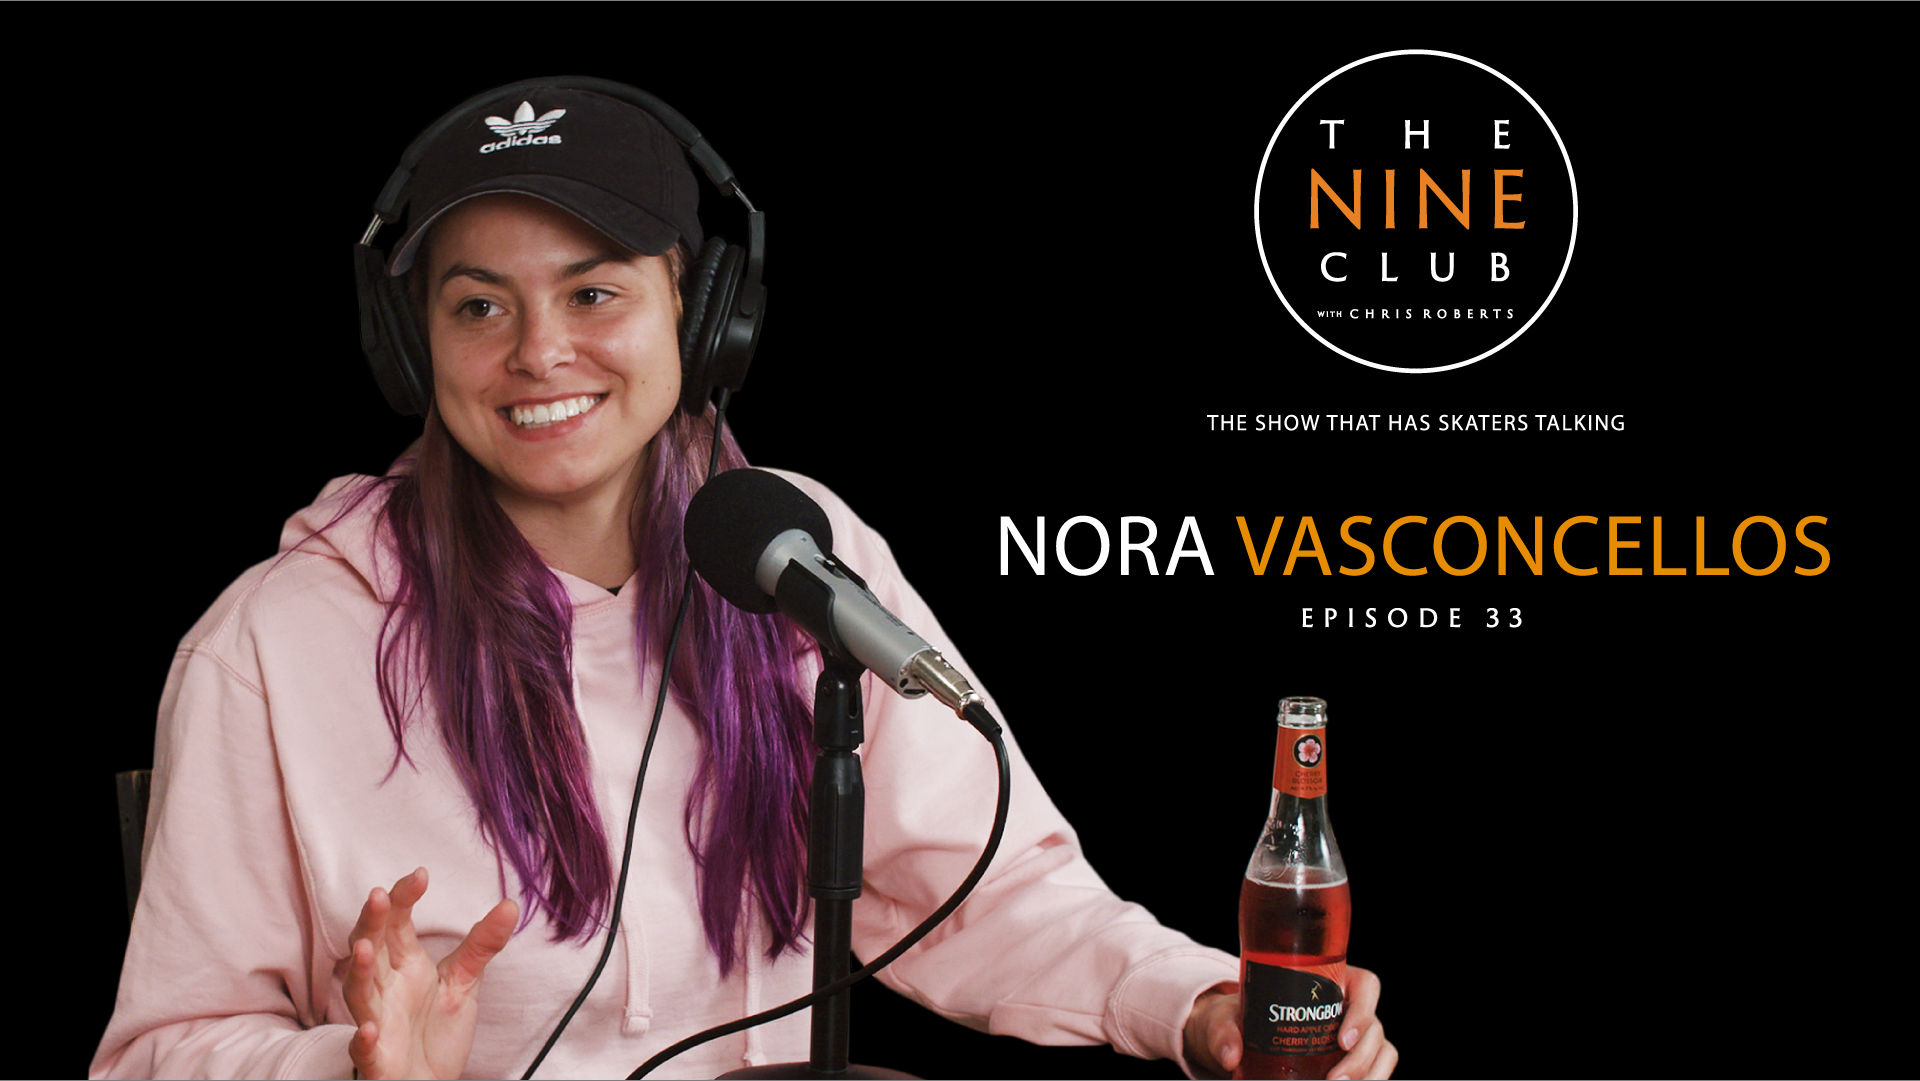 The Nine Club With Chris Roberts, Episode 33 Nora Vasconcellos